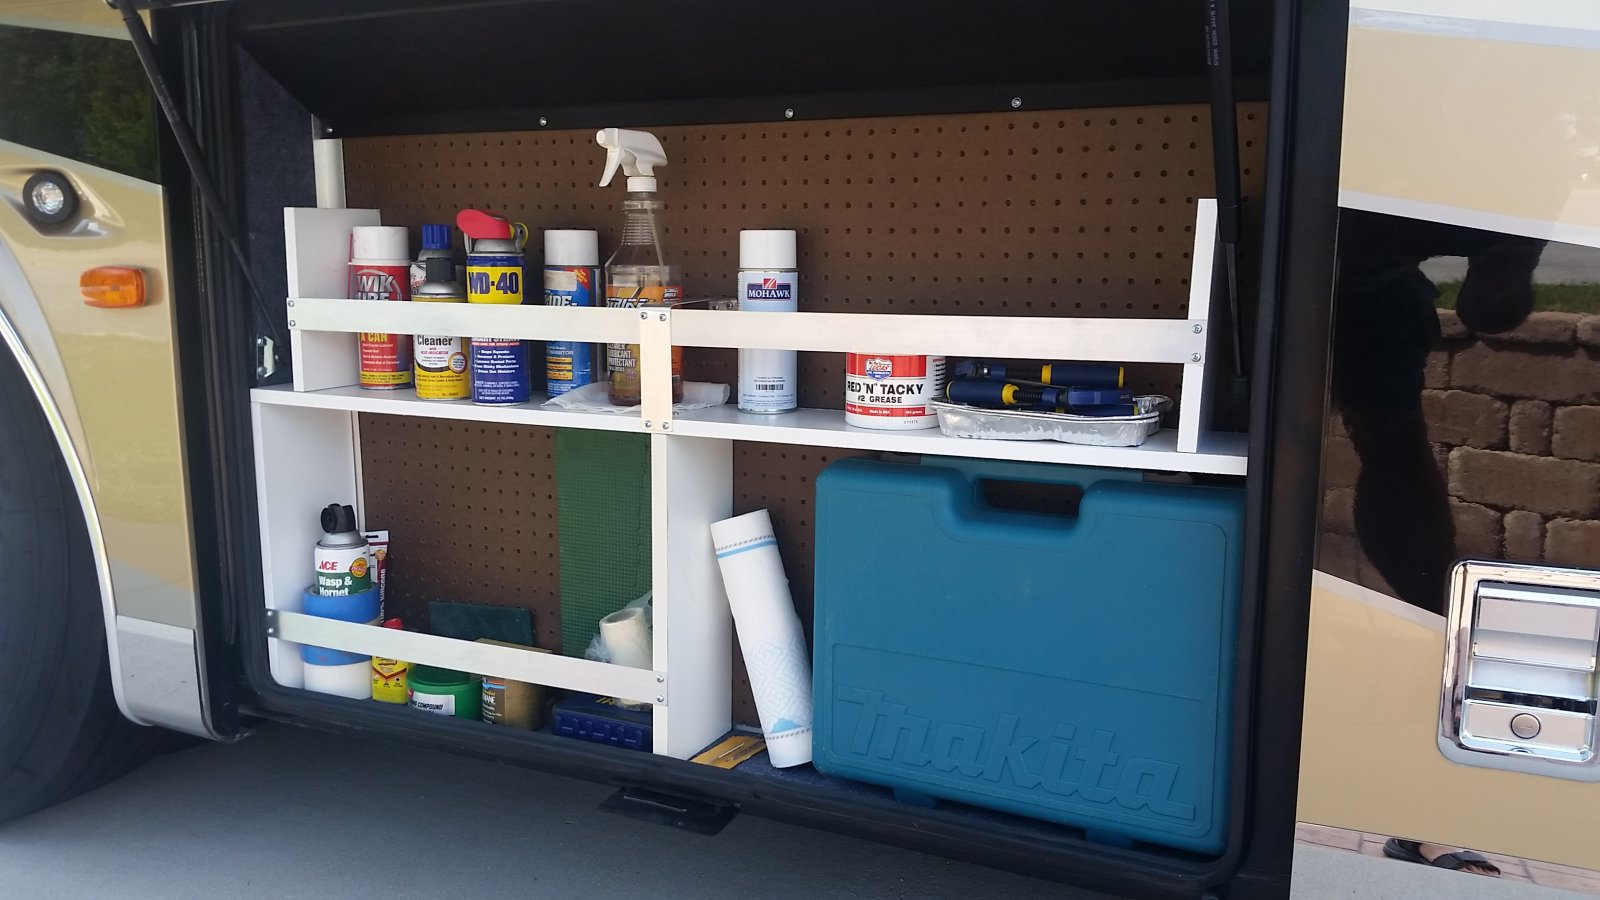 Click image for larger version  Name:Pegboard bay shelf.jpg Views:104 Size:183.3 KB ID:136519